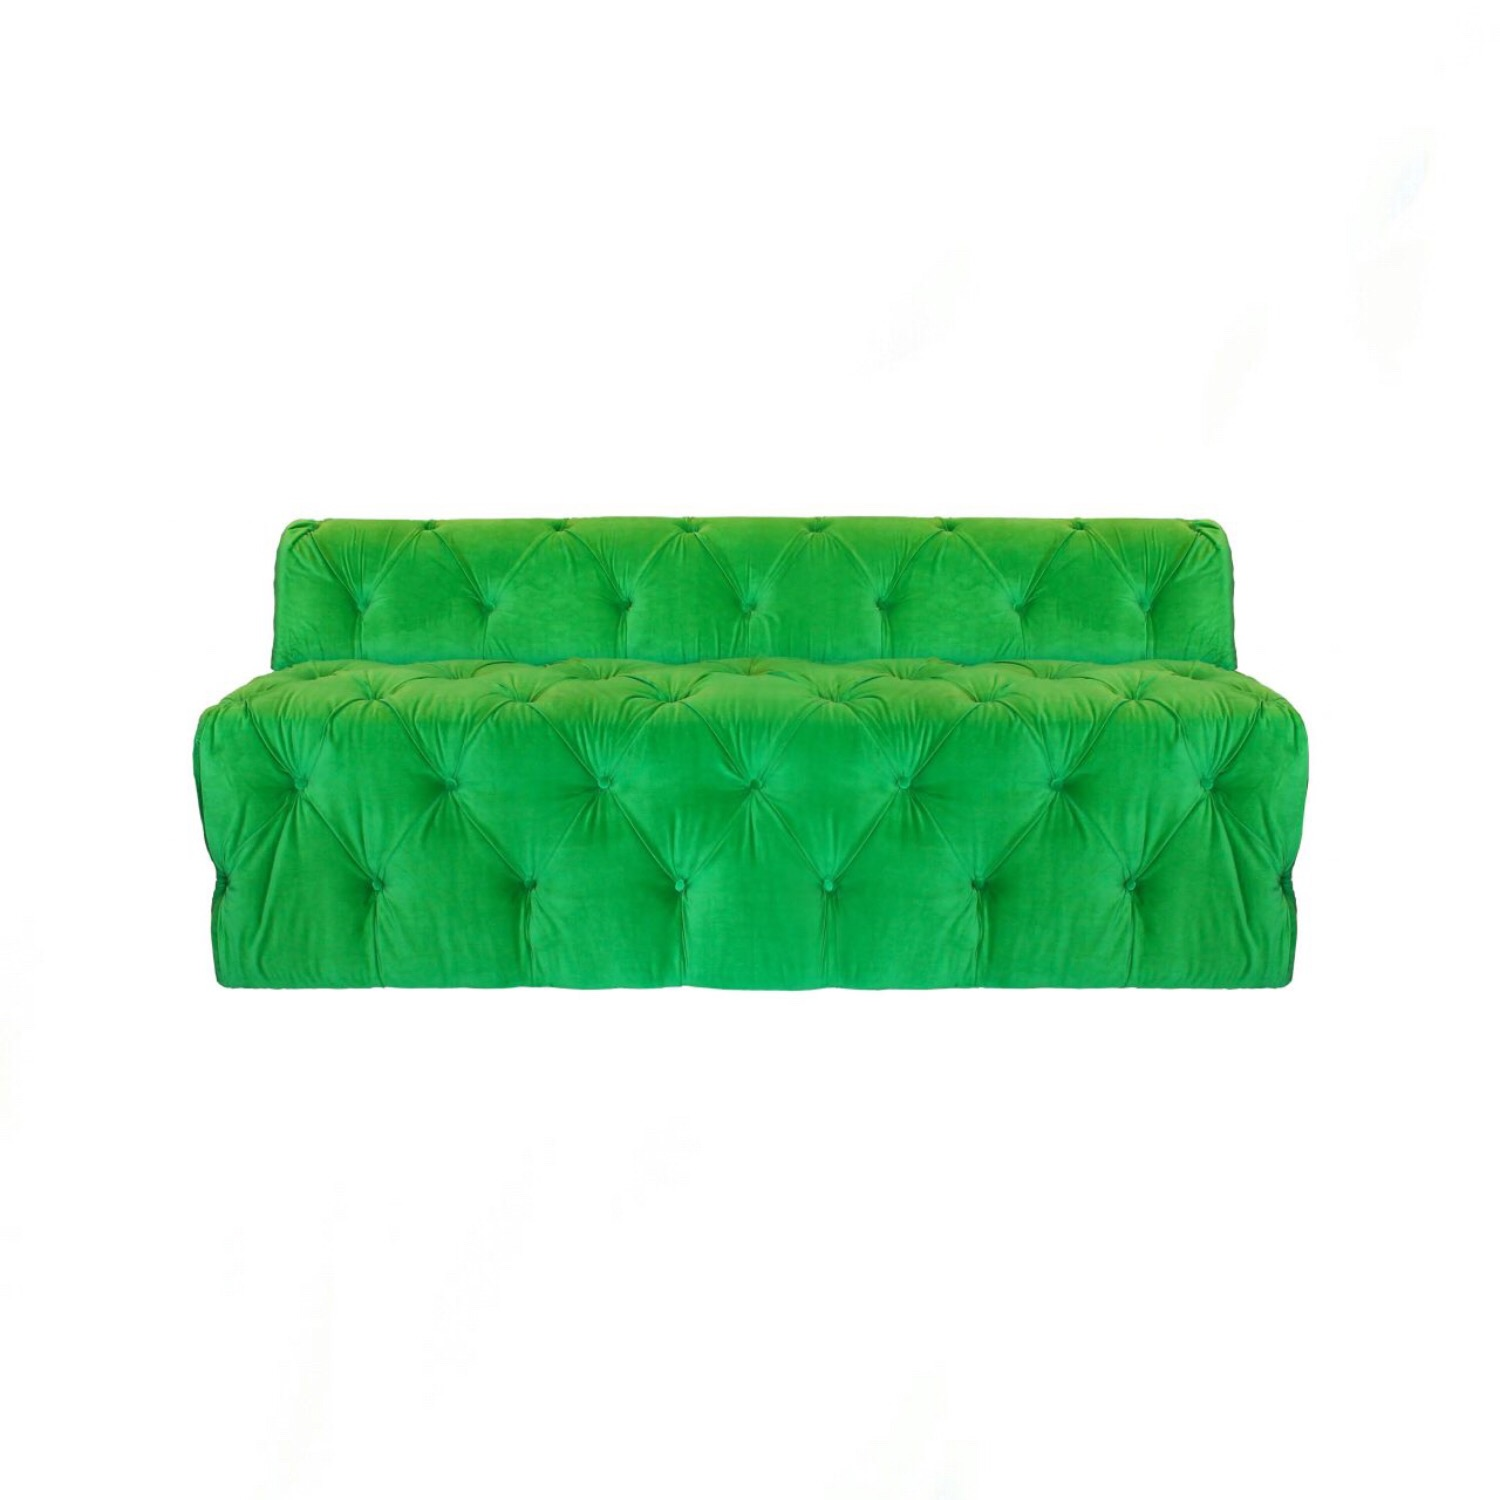 Fitz Tufted Green